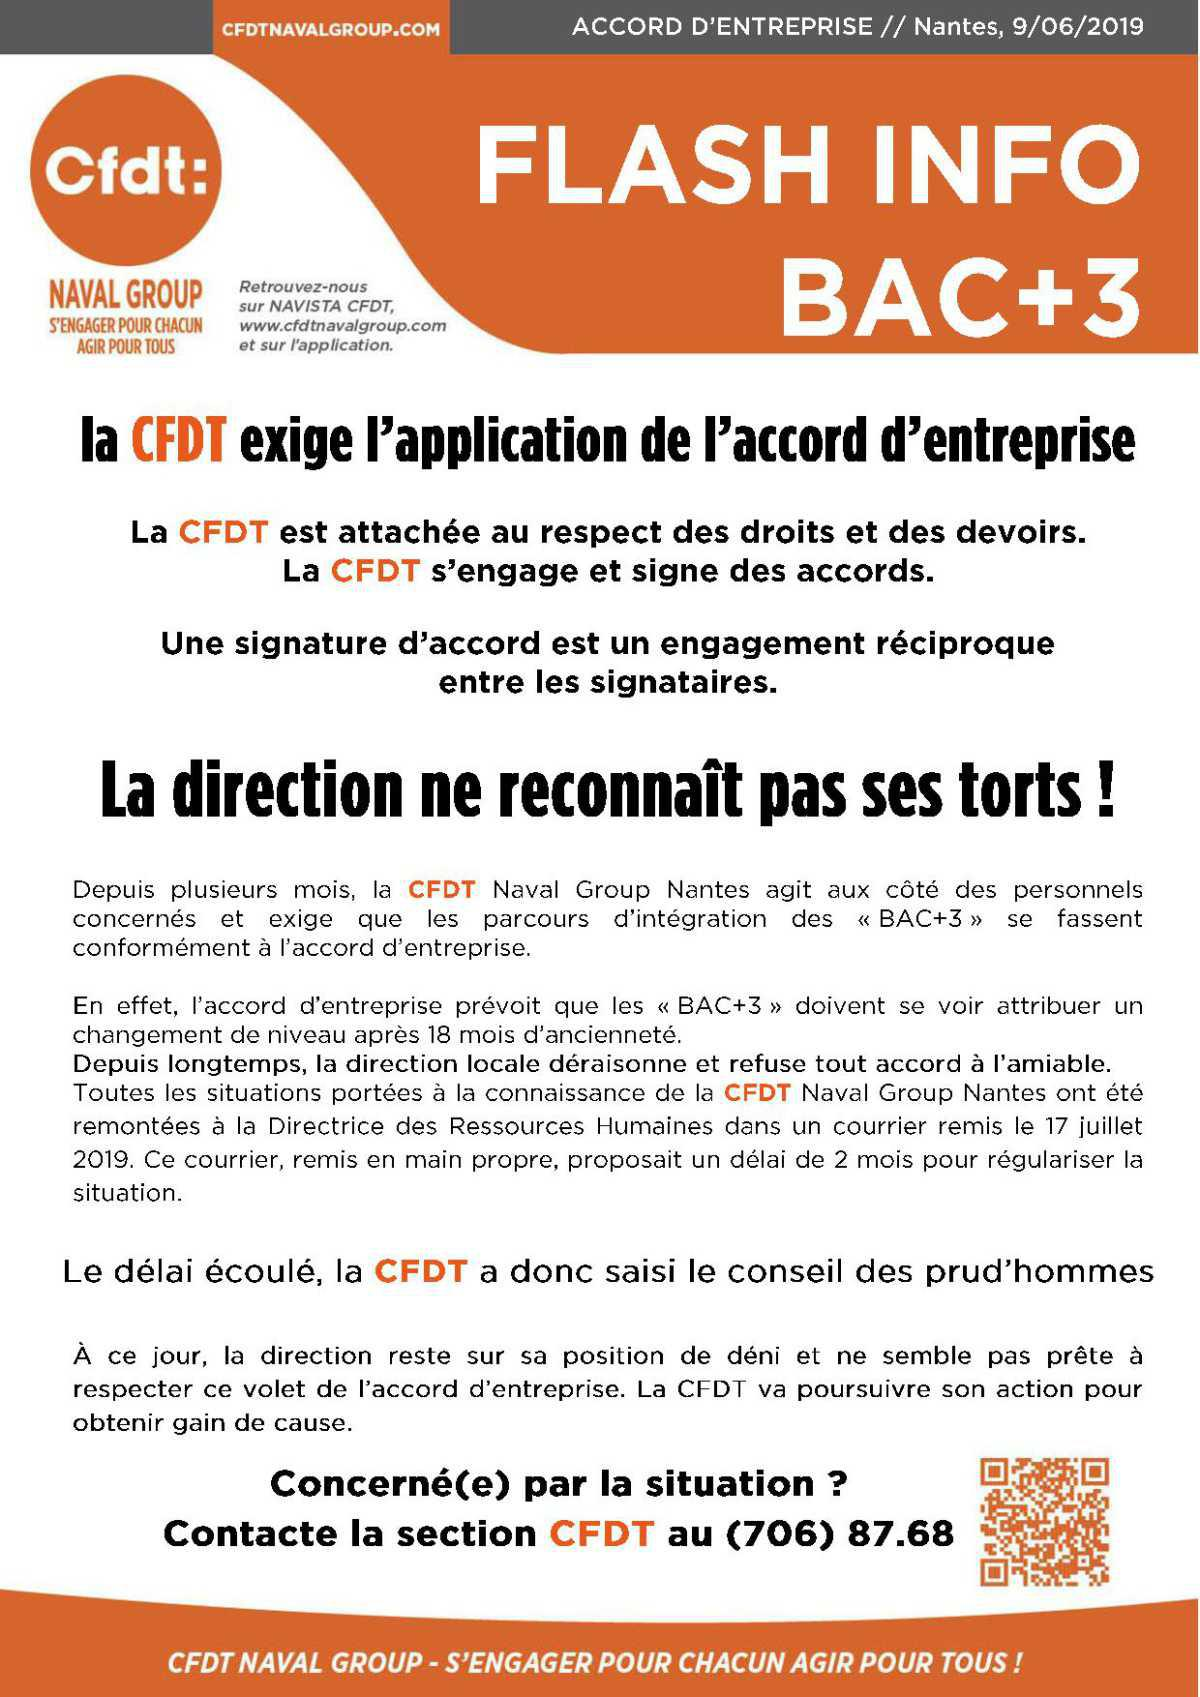 Flash info Bac +3